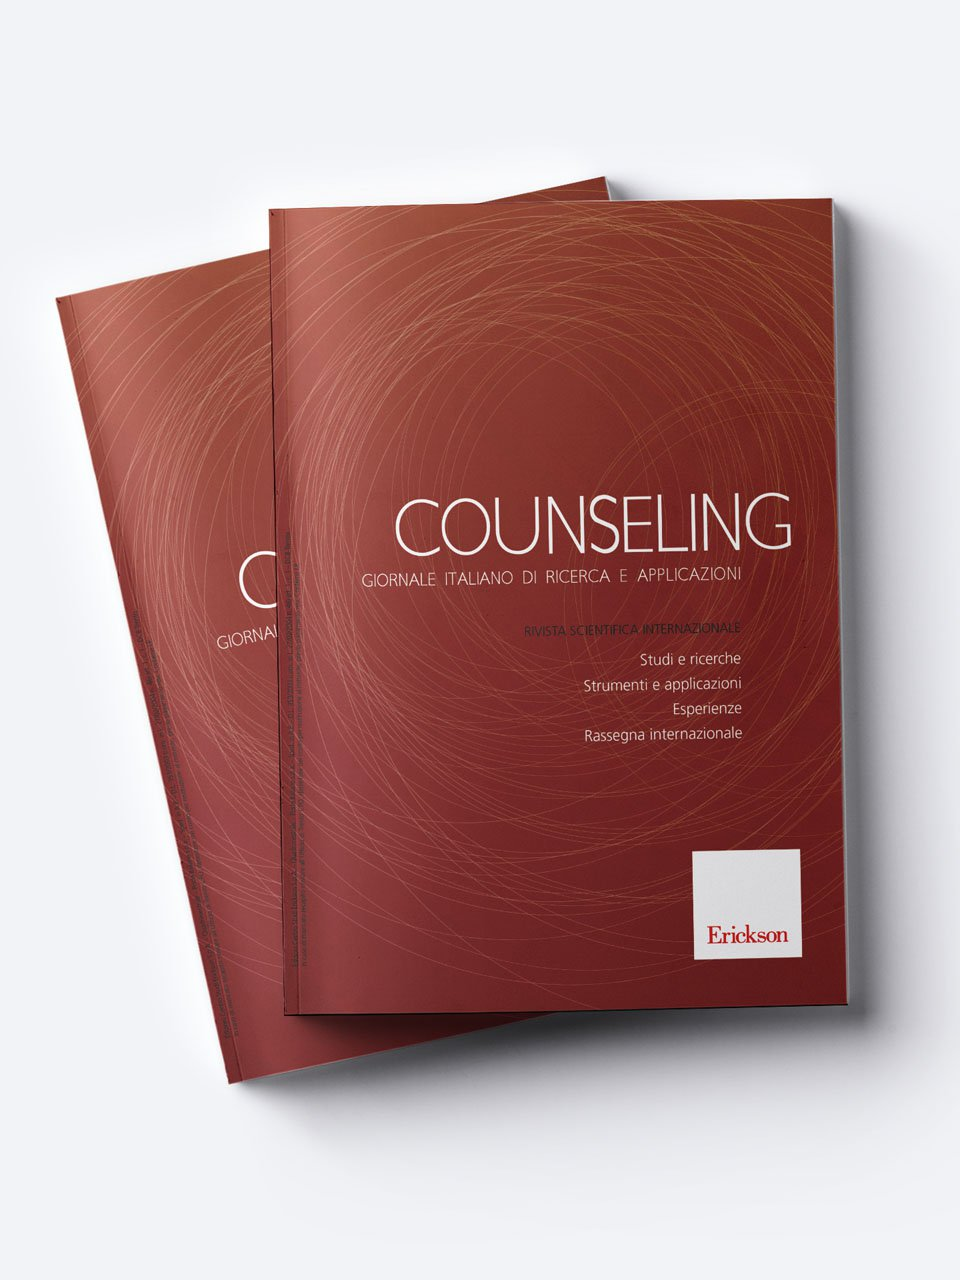 Counseling - Travel Counseling - Libri - Erickson